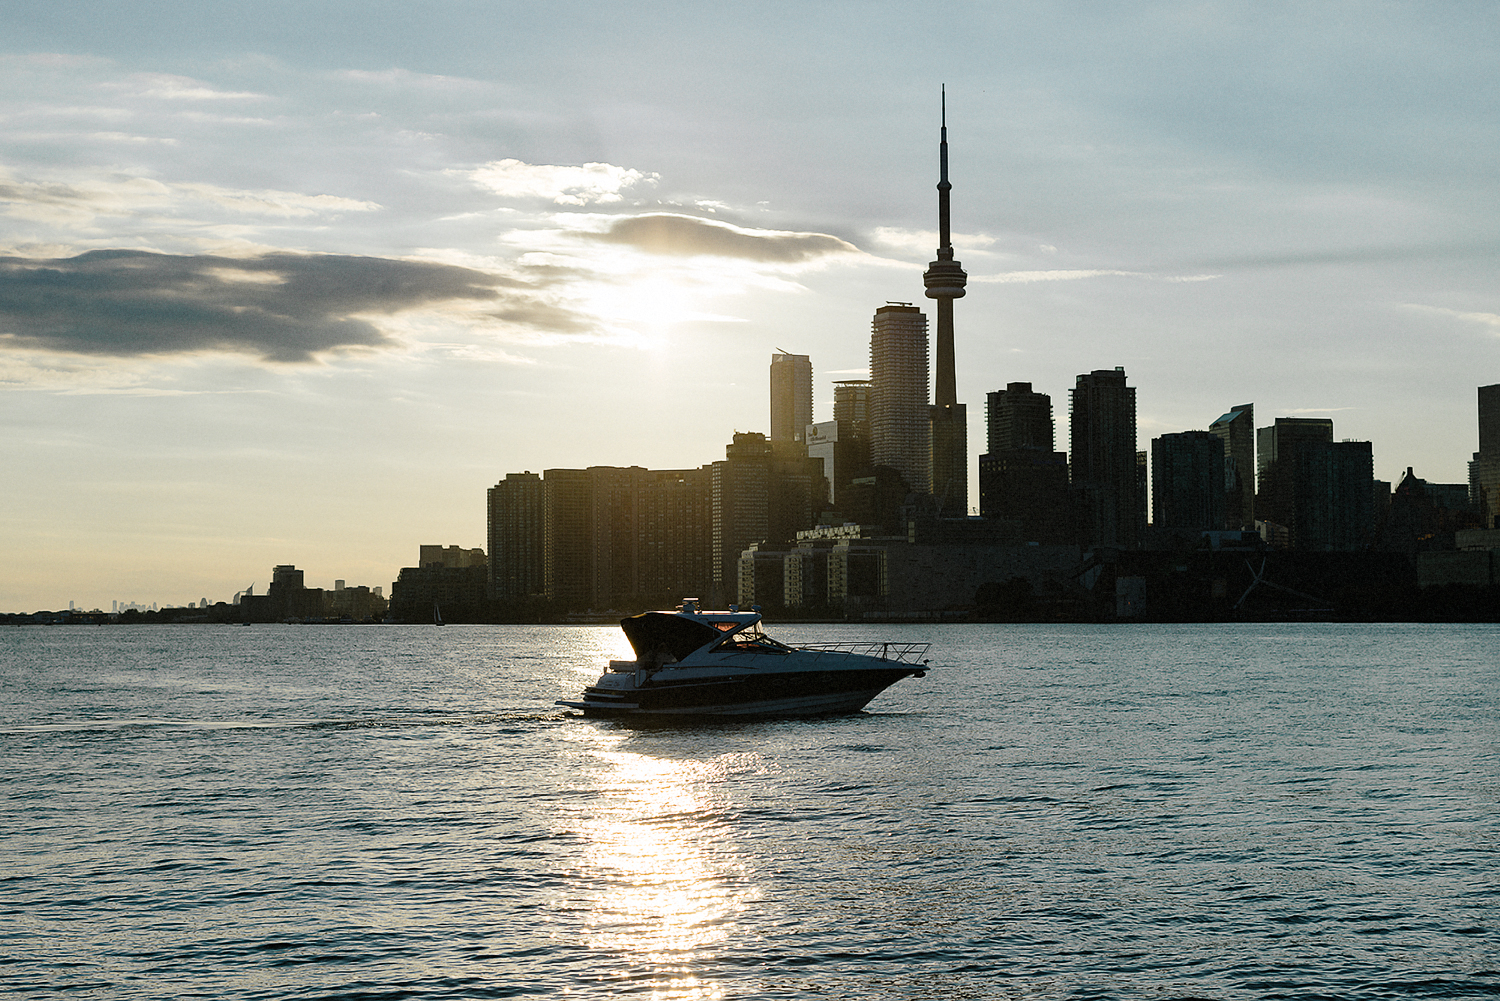 Best-Wedding-photographers-Toronto-NAtural-Candid-wedding-photography-Airship37-Sunset-Portraits-City-Skyline.jpg